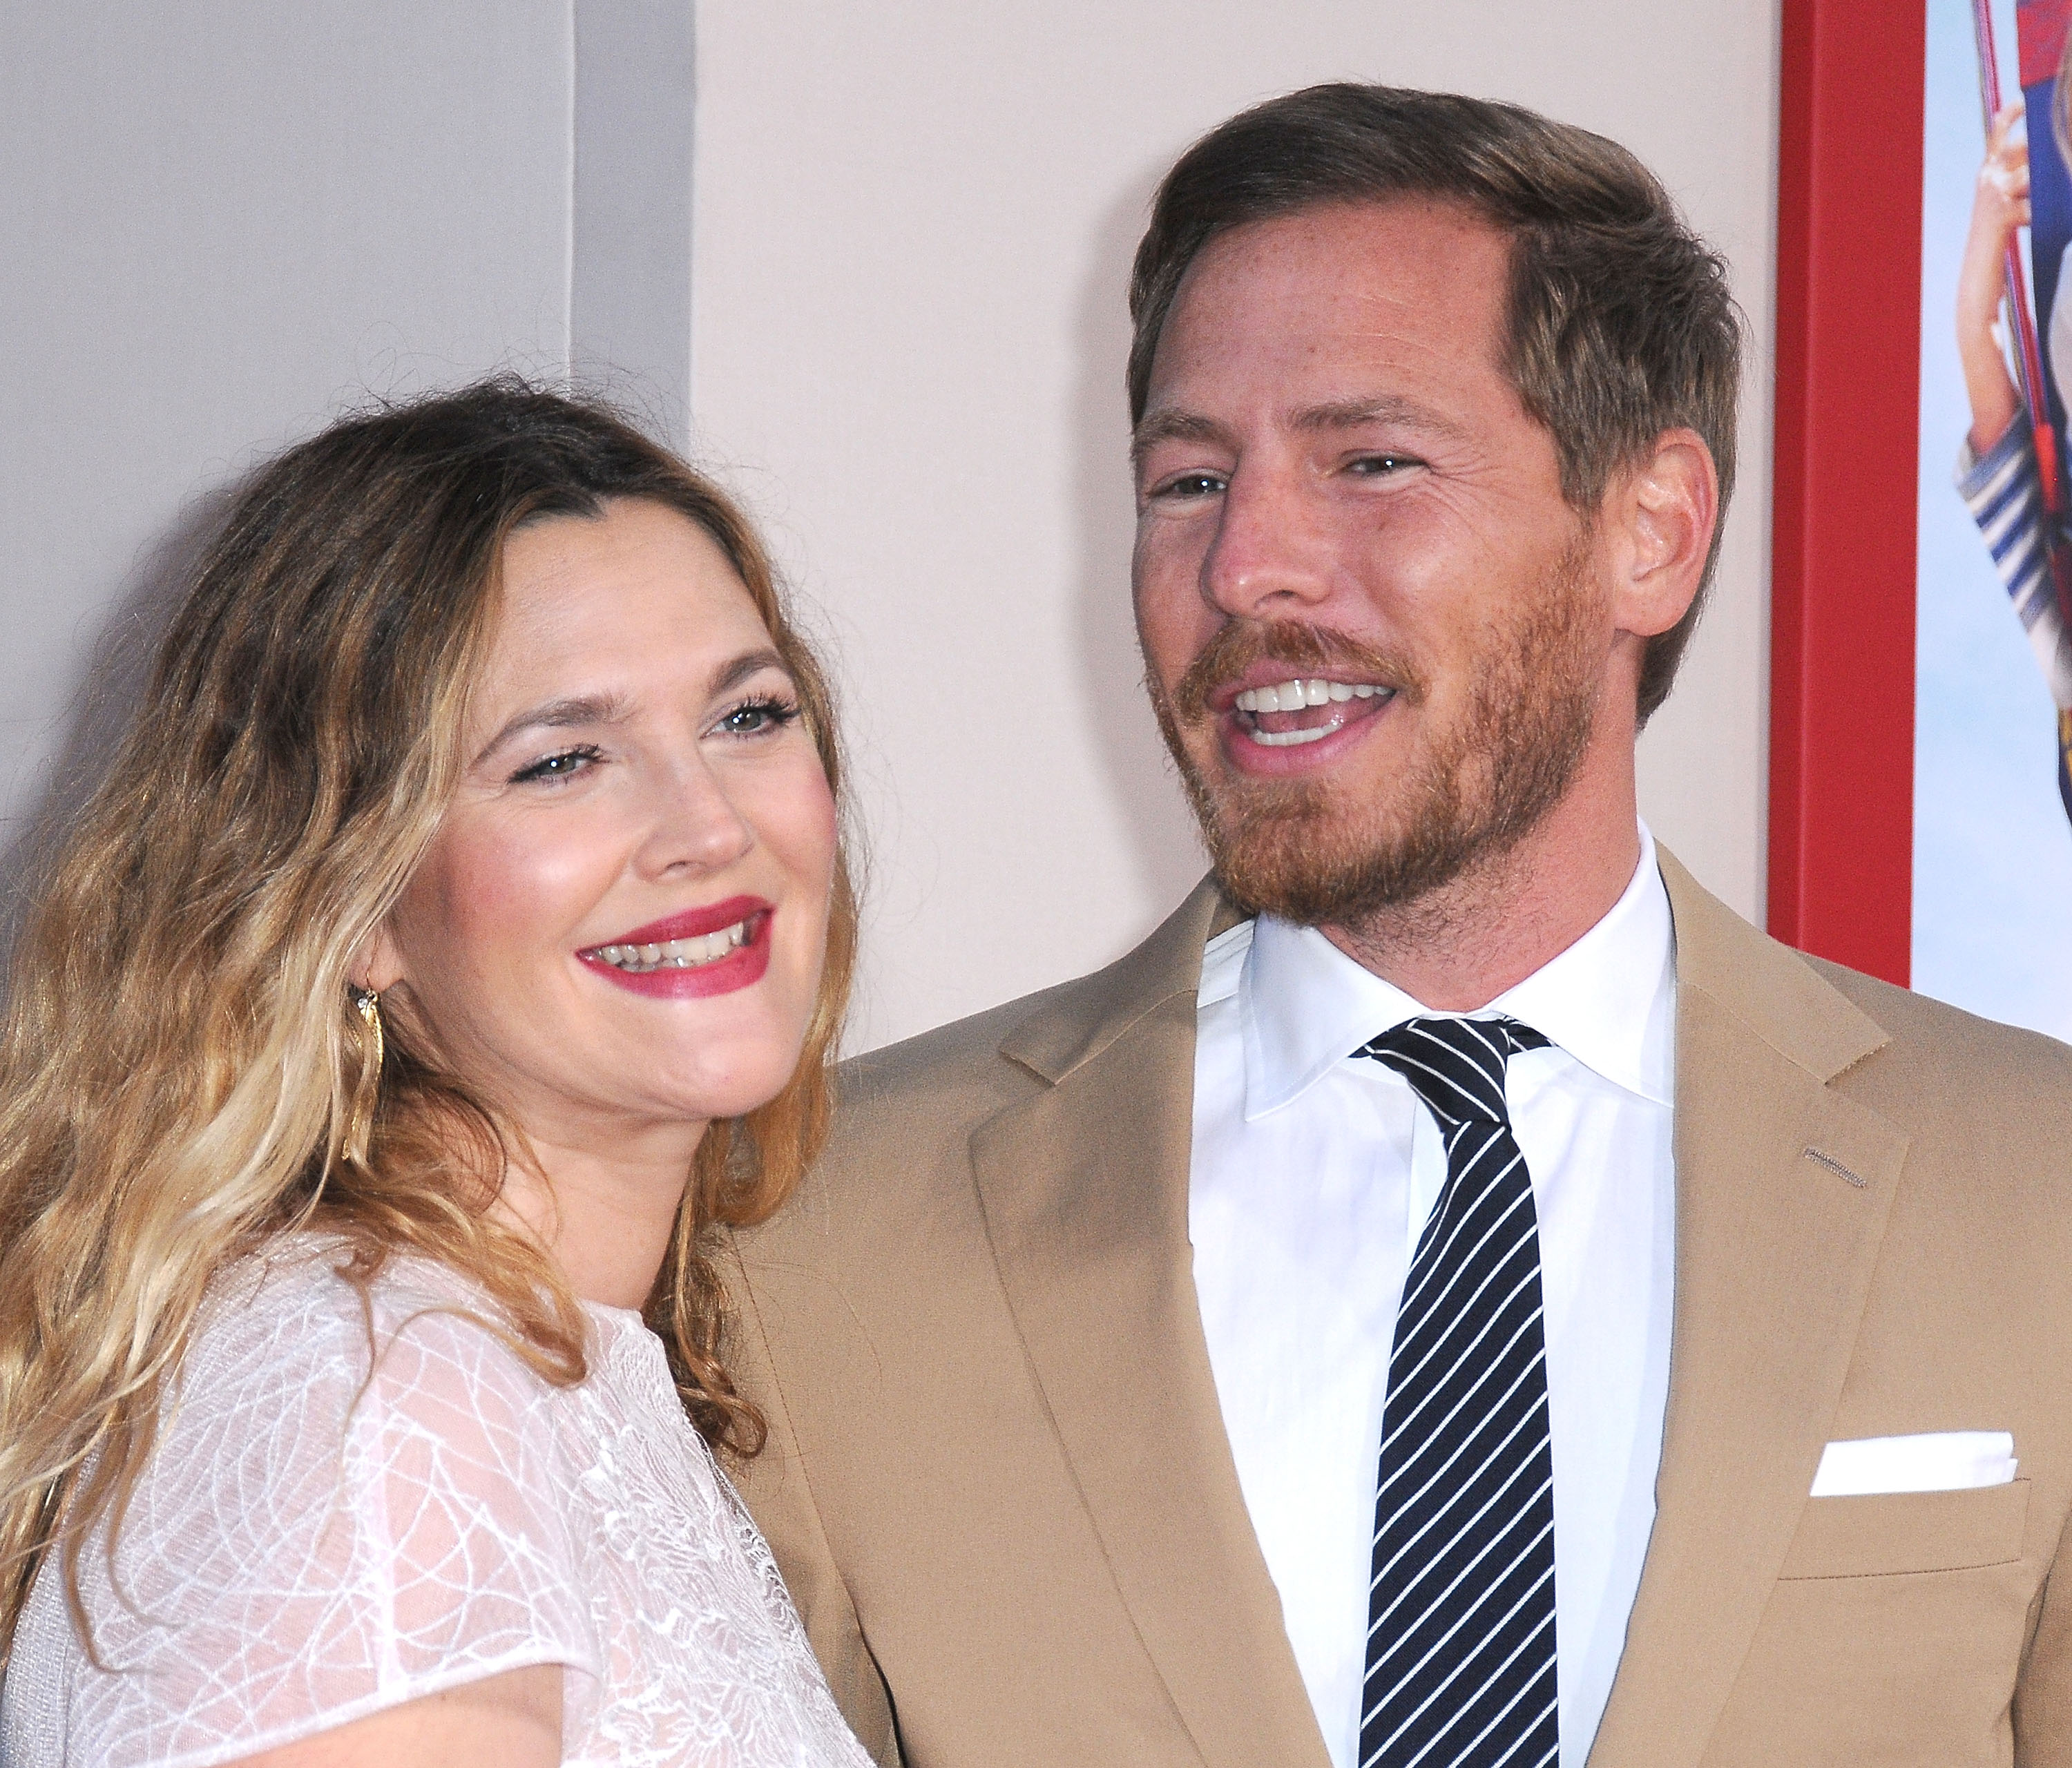 Drew Barrymore 'embarks on third divorce as she splits from husband Will Kopelman'